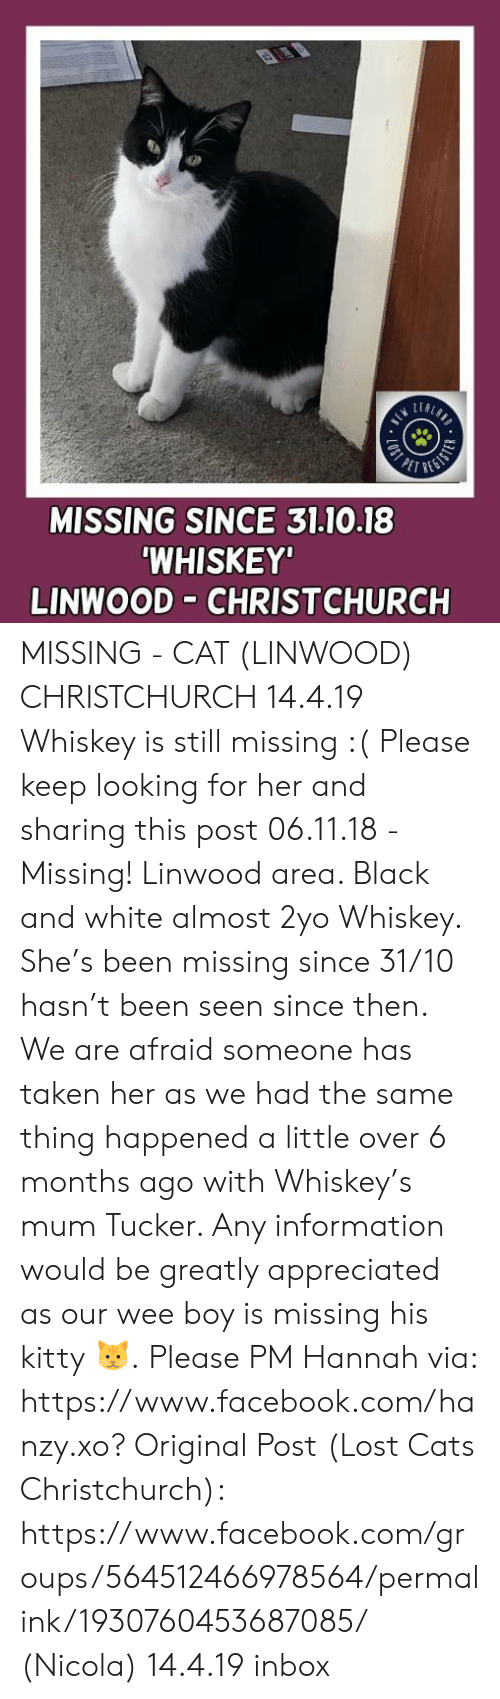 Cats, Facebook, and Memes: MISSING SINCE 31.10.18  WHISKEY'  LINWOOD CHRISTCHURCH MISSING - CAT (LINWOOD) CHRISTCHURCH  14.4.19 Whiskey is still missing :(  Please keep looking for her and sharing this post  06.11.18 - Missing! Linwood area. Black and white almost 2yo Whiskey. She's been missing since 31/10 hasn't been seen since then. We are afraid someone has taken her as we had the same thing happened a little over 6 months ago with Whiskey's mum Tucker. Any information would be greatly appreciated as our wee boy is missing his kitty 🐱.  Please PM Hannah via: https://www.facebook.com/hanzy.xo?  Original Post (Lost Cats Christchurch): https://www.facebook.com/groups/564512466978564/permalink/1930760453687085/ (Nicola)  14.4.19 inbox